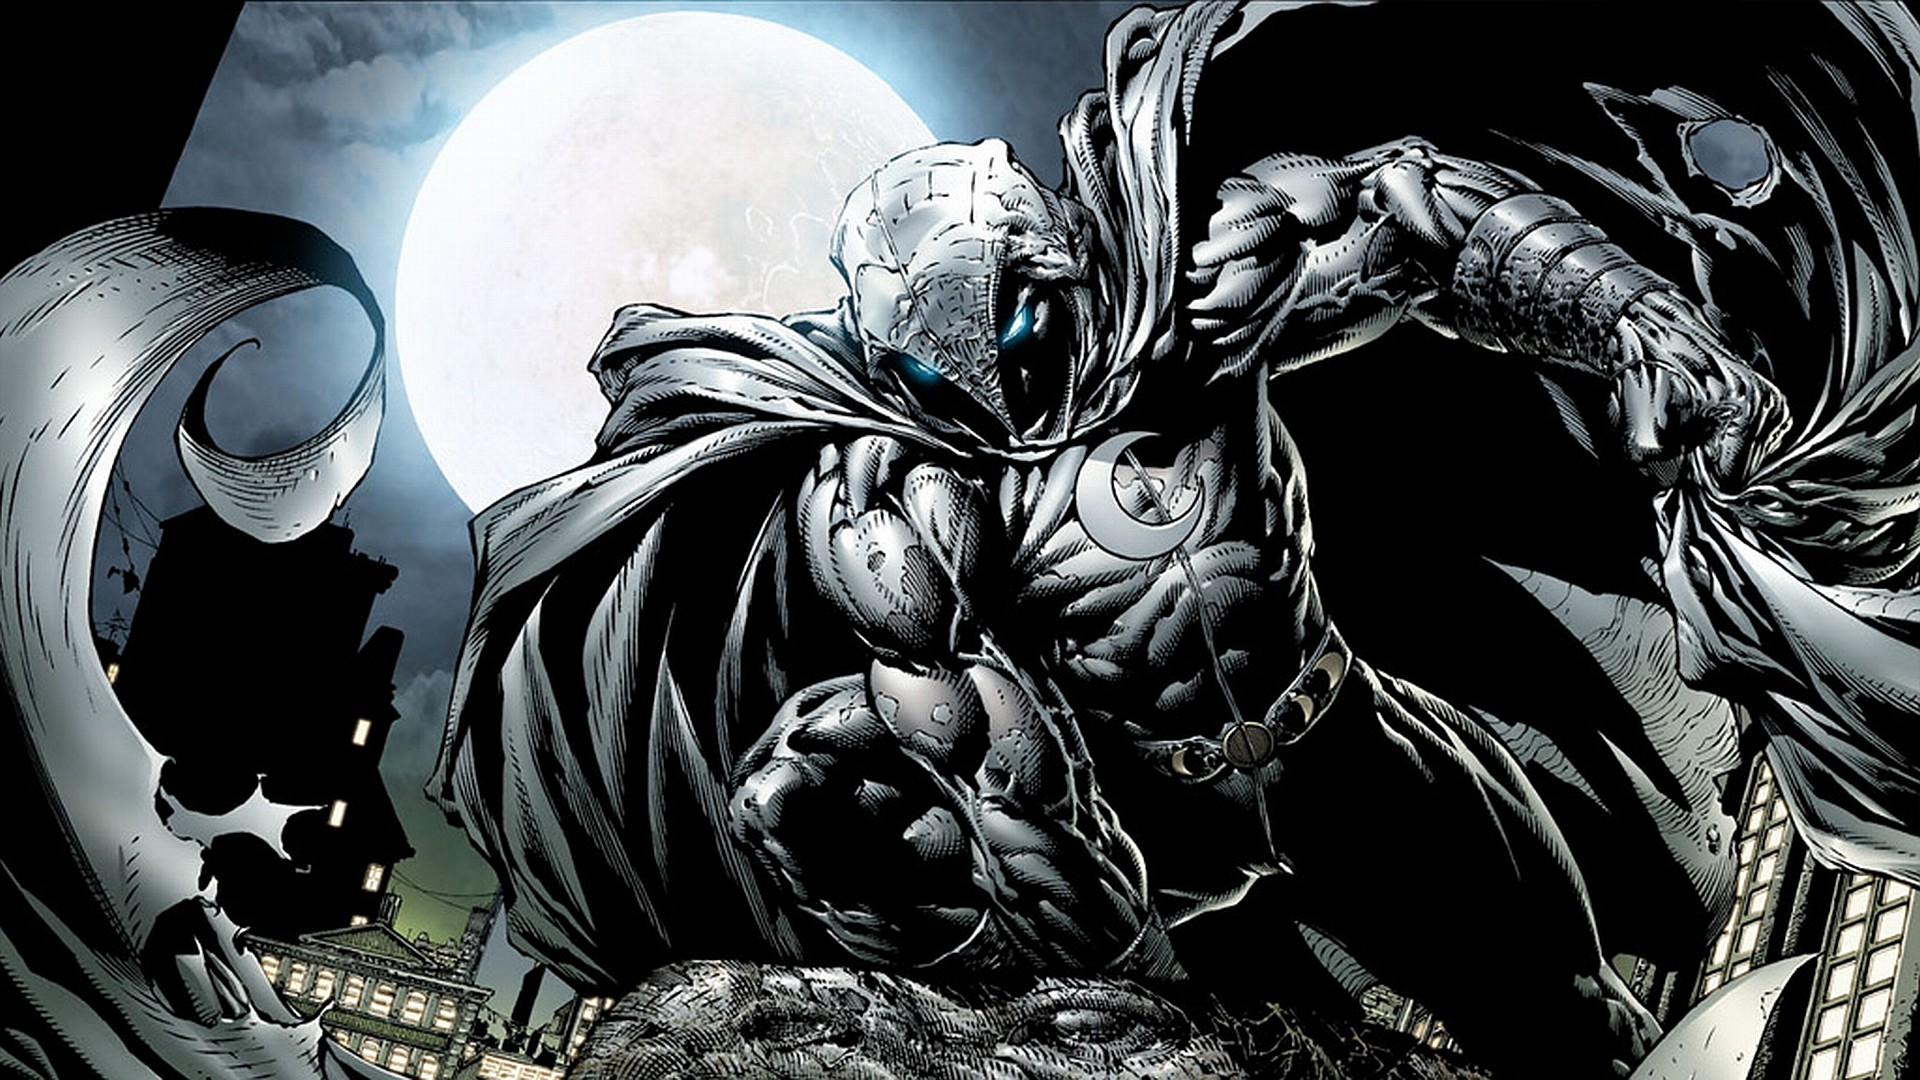 1920x1080 53 Moon Knight HD Wallpapers | Backgrounds - Wallpaper Abyss - Page 2